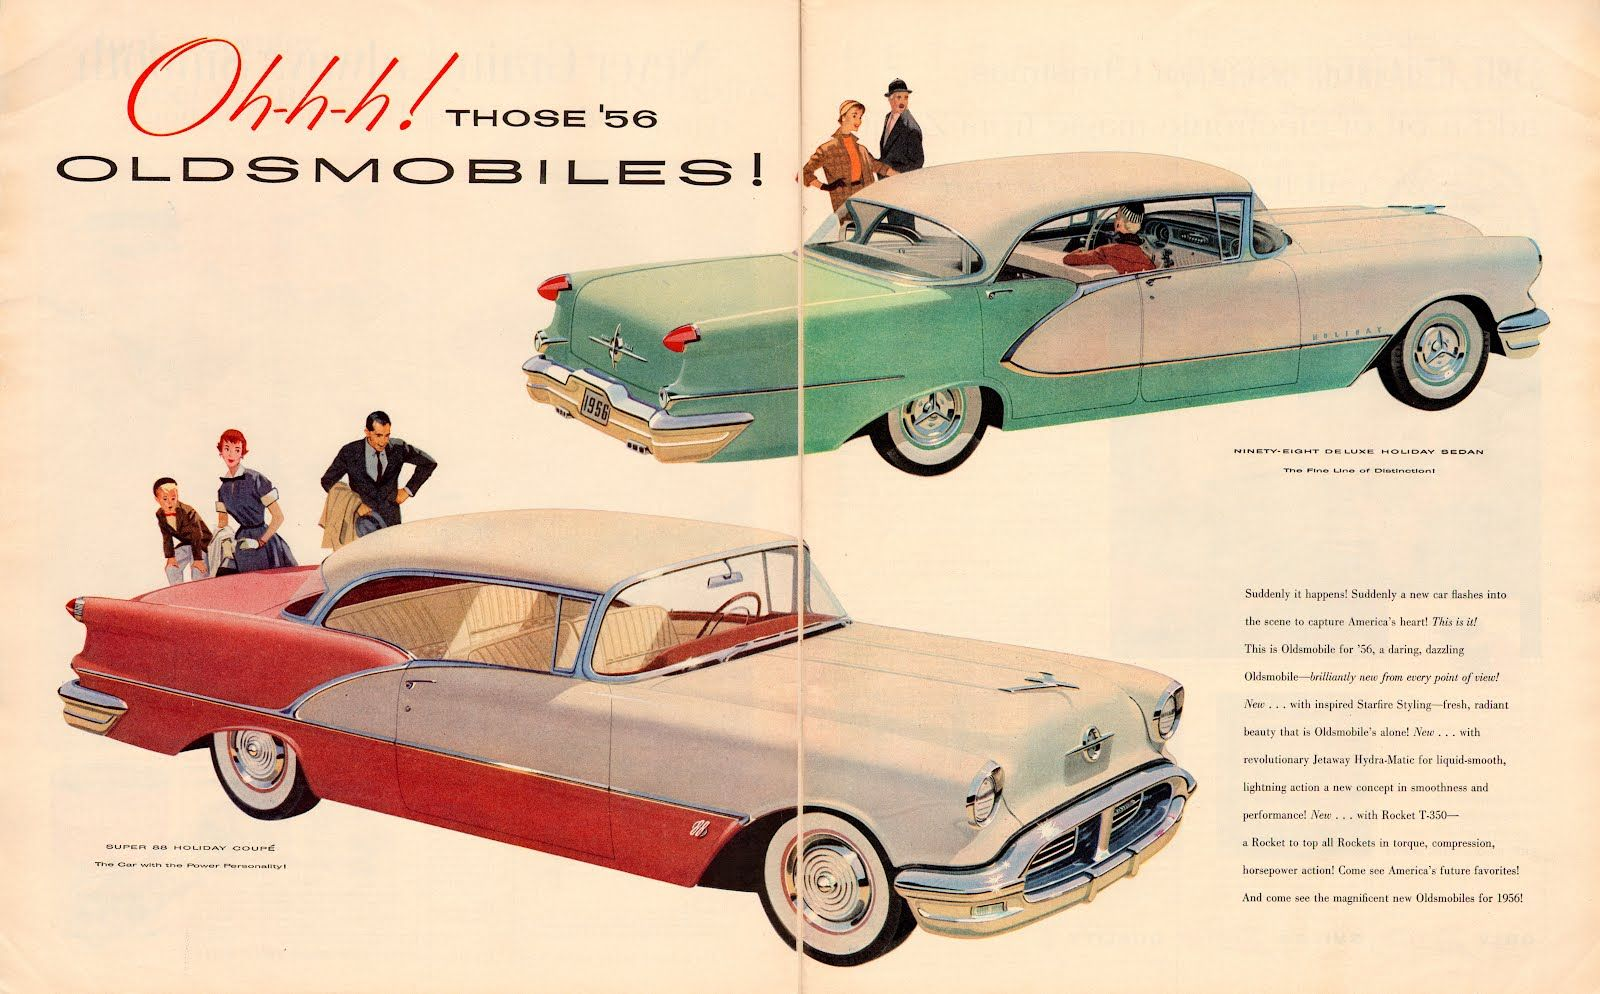 1956_oldsmobiles_ad.jpg (1600×994)   Vintage Ads, Posters, and Other ...